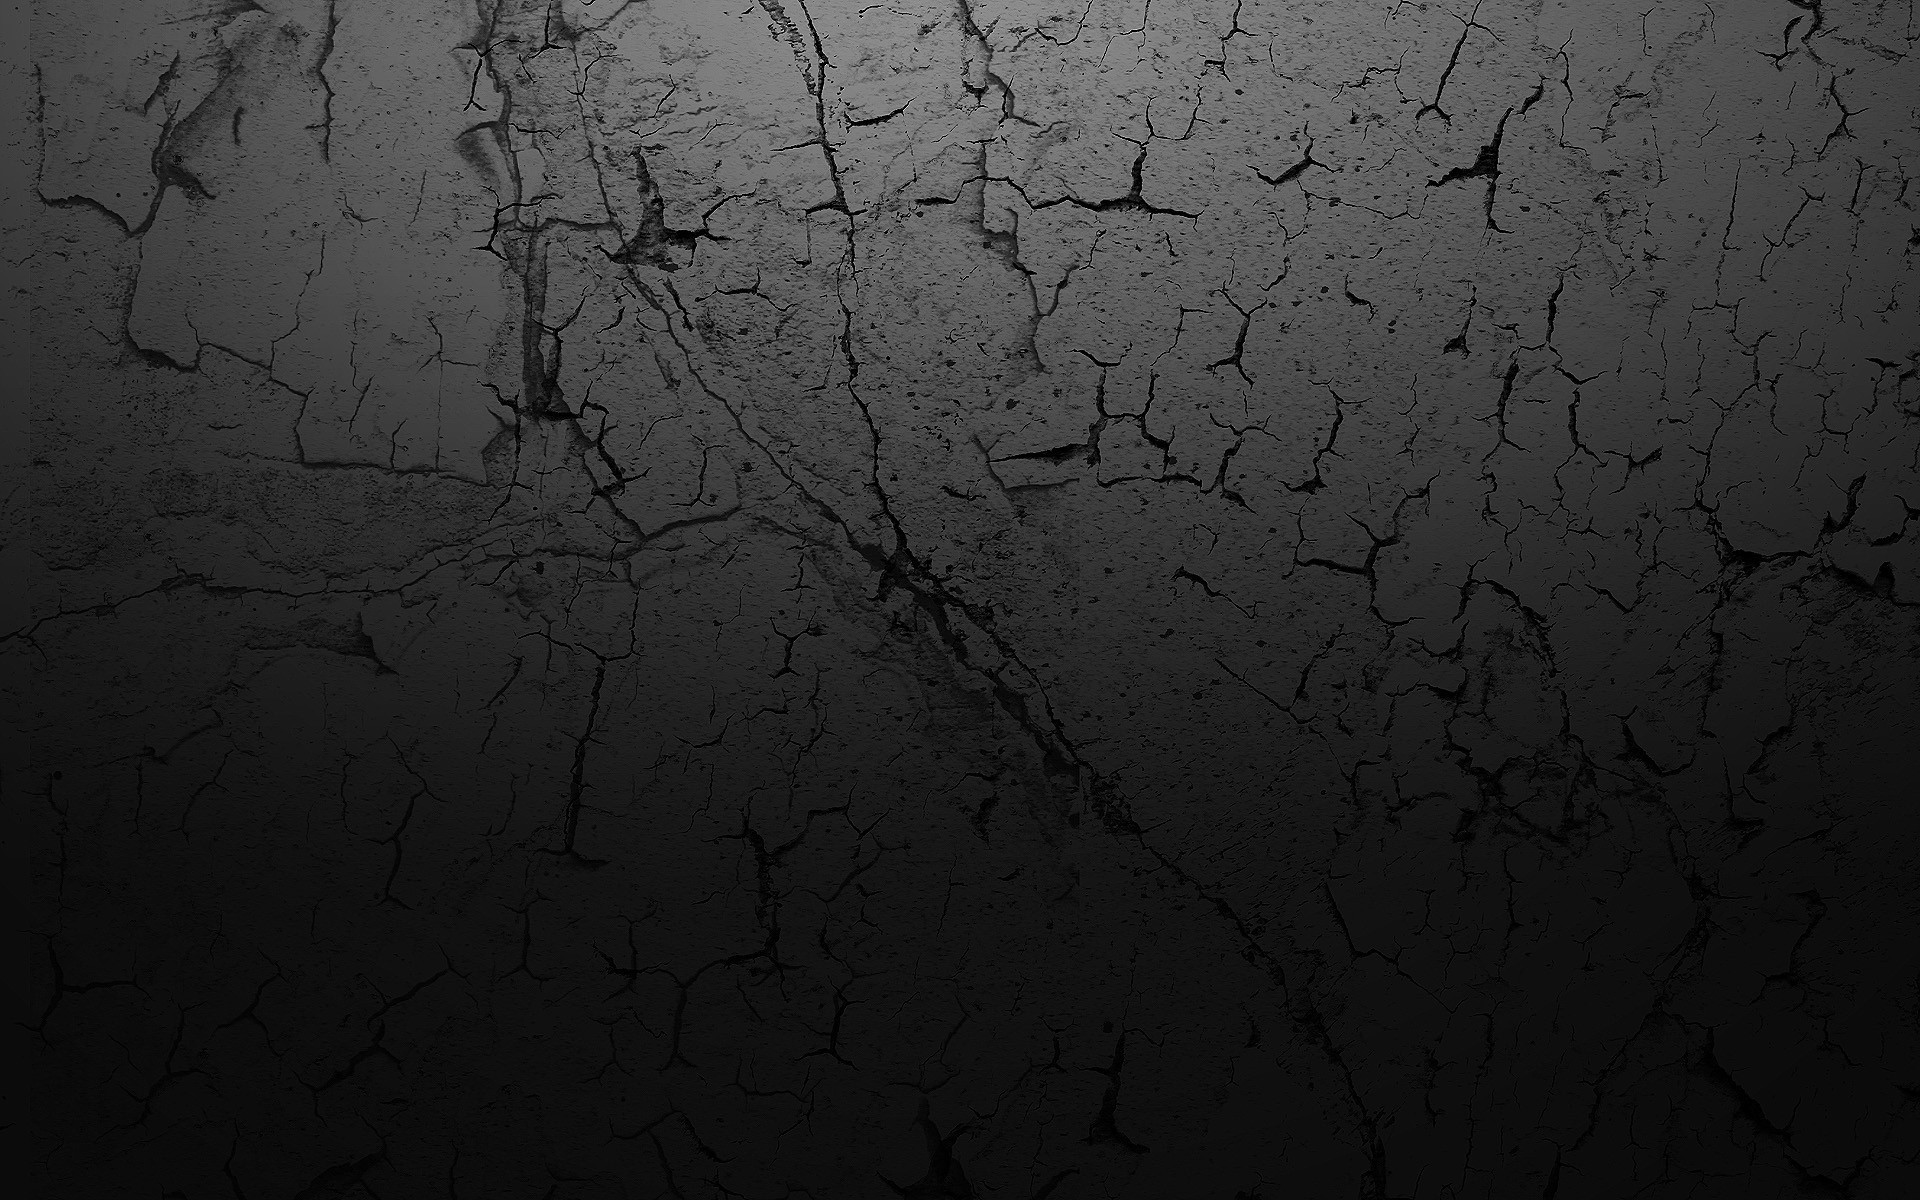 1920x1200 Cracked Texture Abstract HD desktop wallpaper, Texture wallpaper, Crack  wallpaper - Abstract no.